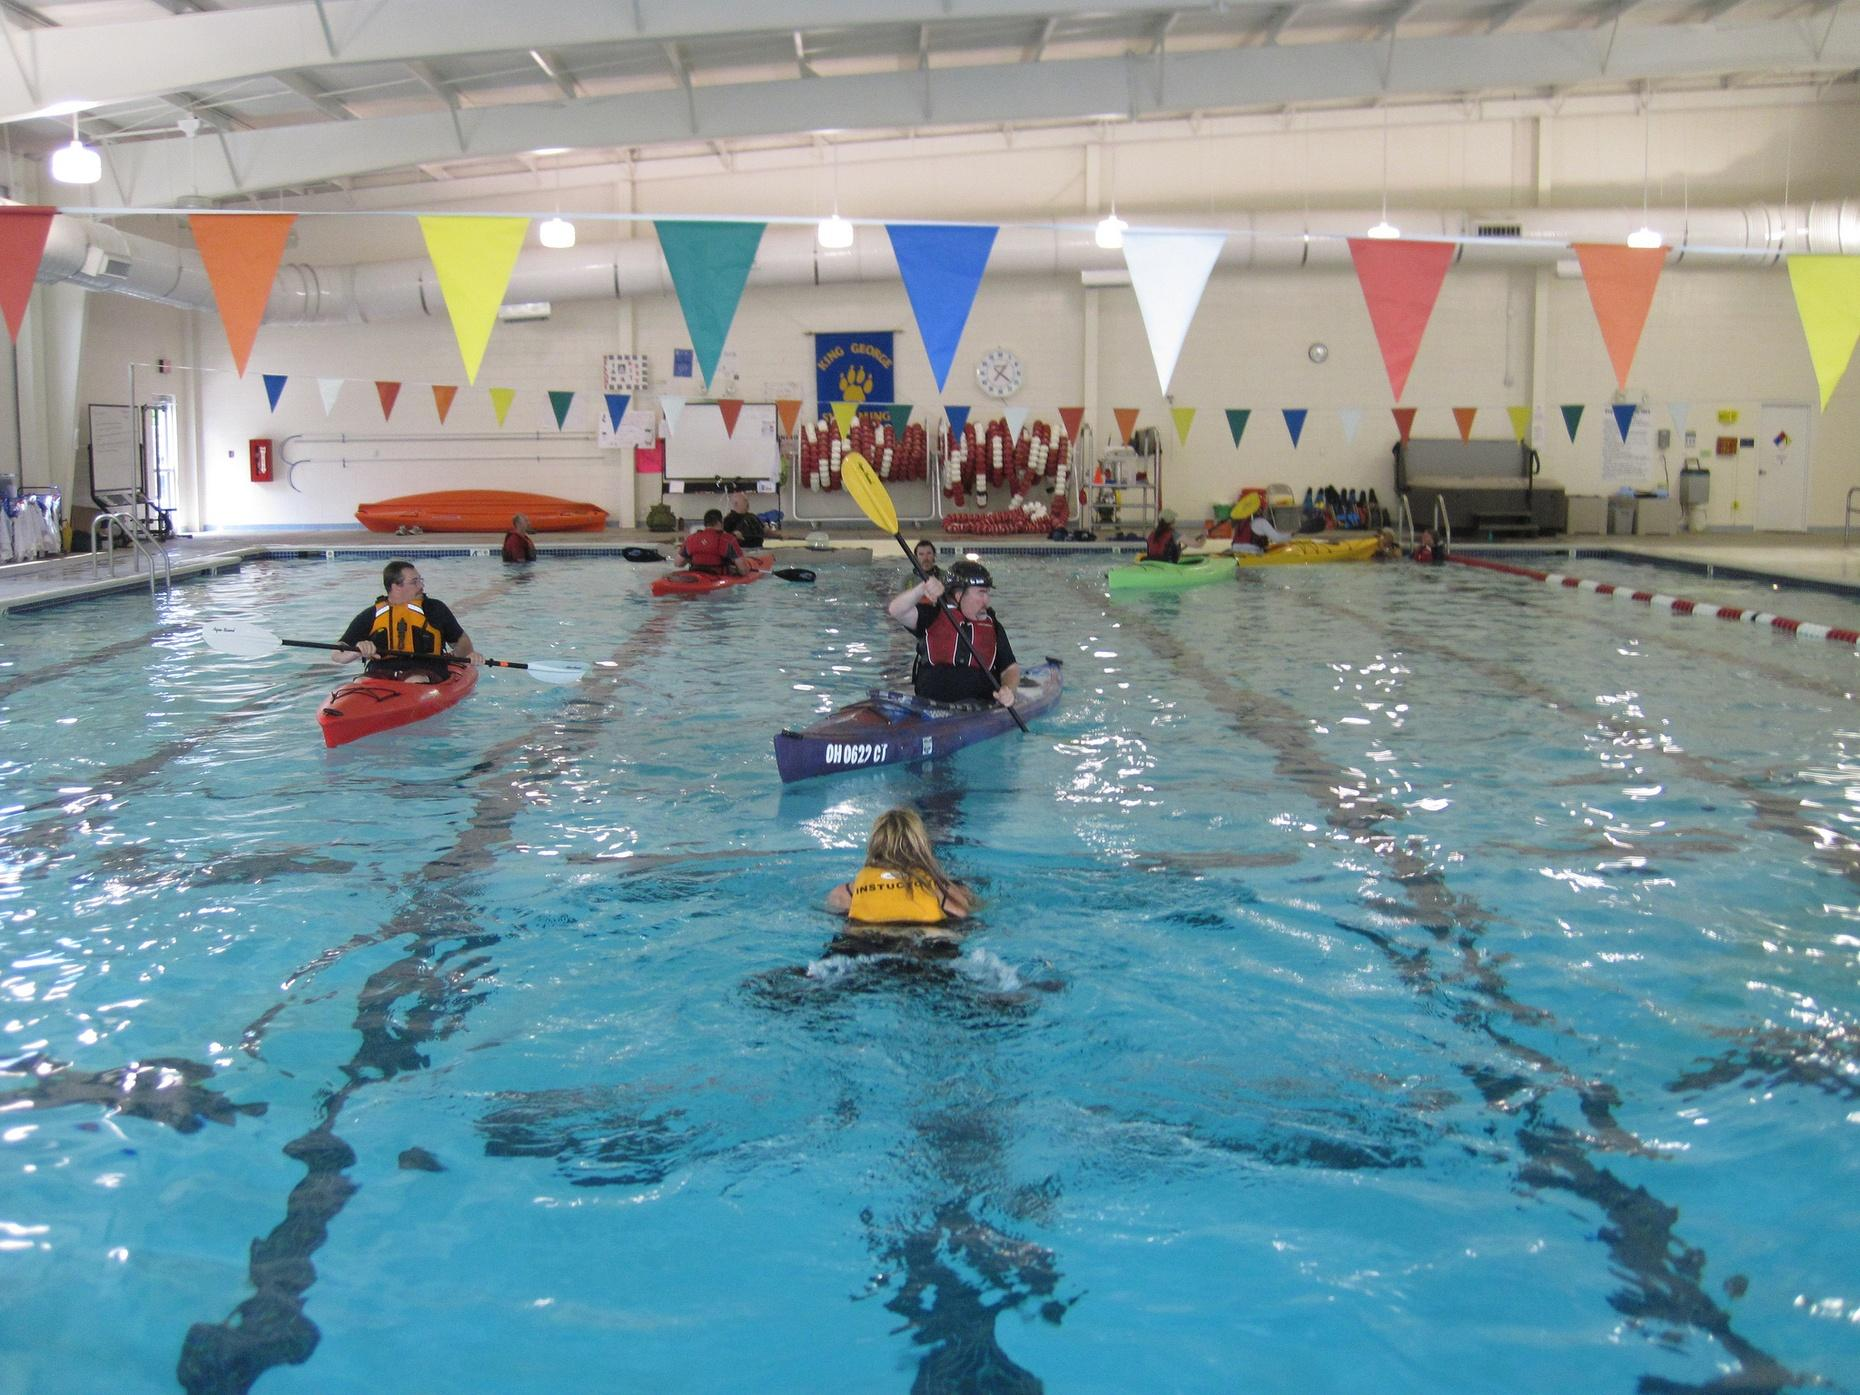 Four Week Kayaking Introduction Course in a Pool